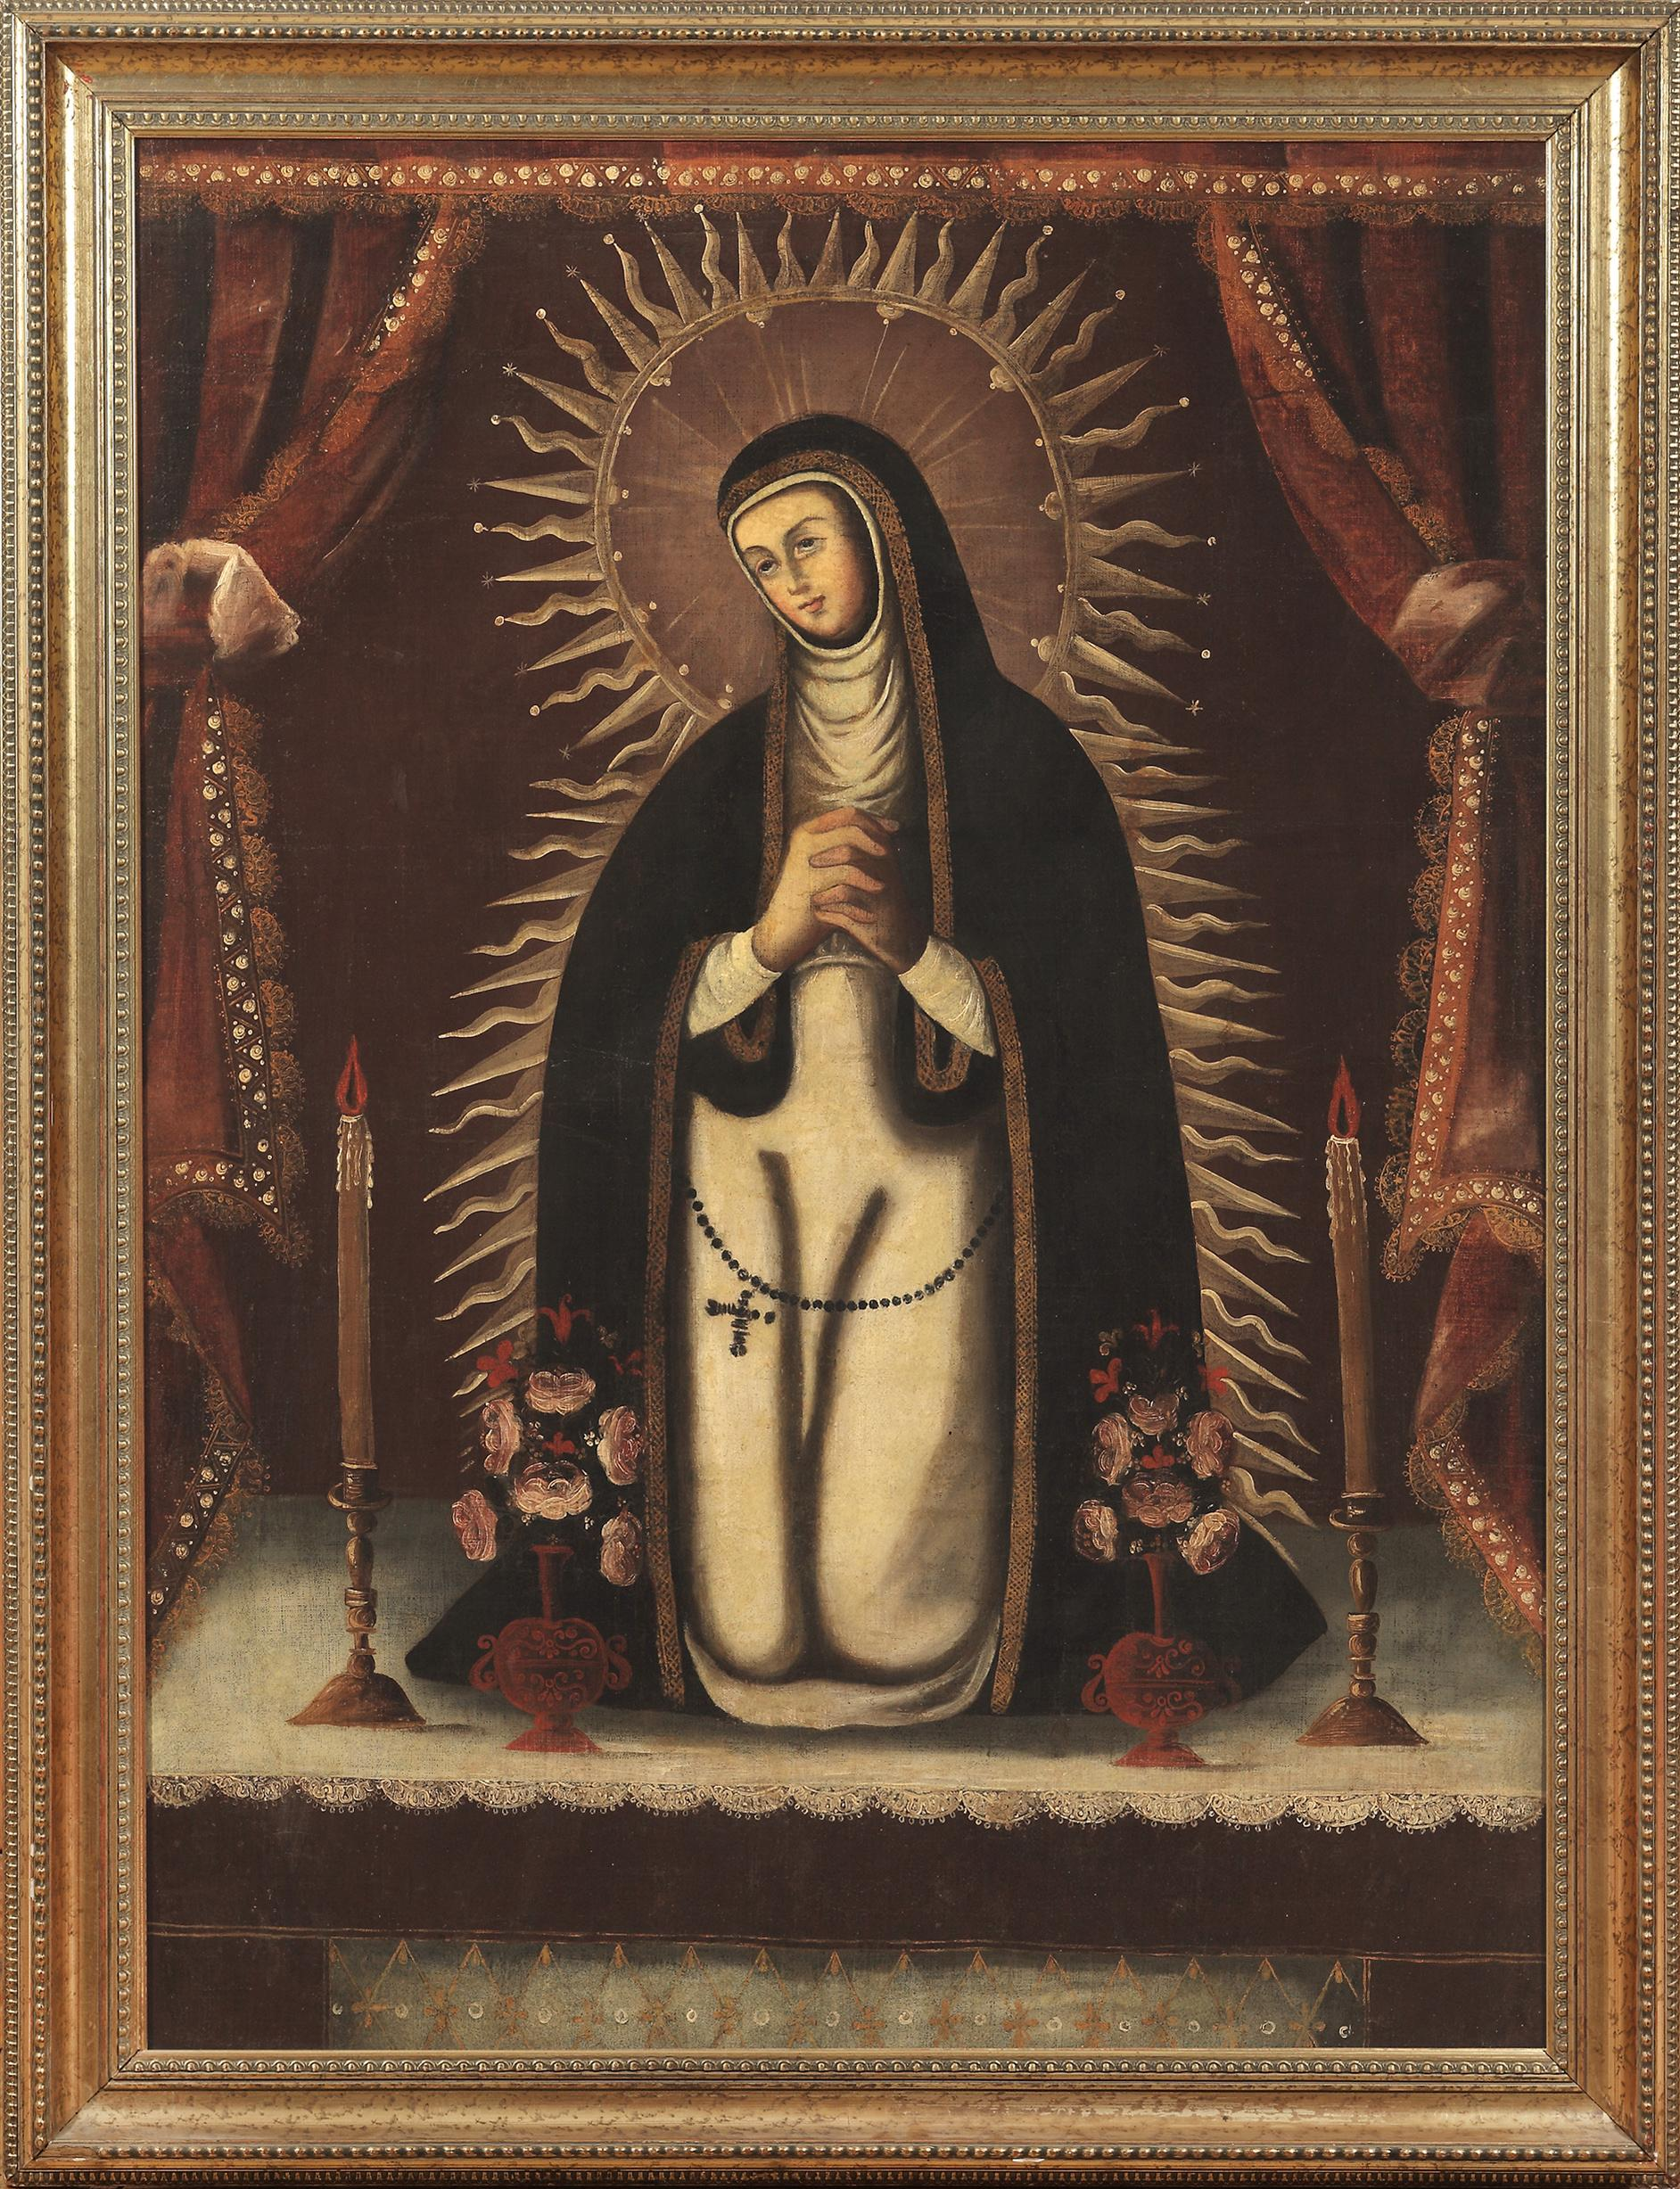 Nuestra Señora de la Soledad (Our Lady of Solitude), 18th century, by an unnamed painter in viceregal Mexico or Peru, offered by Robert Simon Fine Art